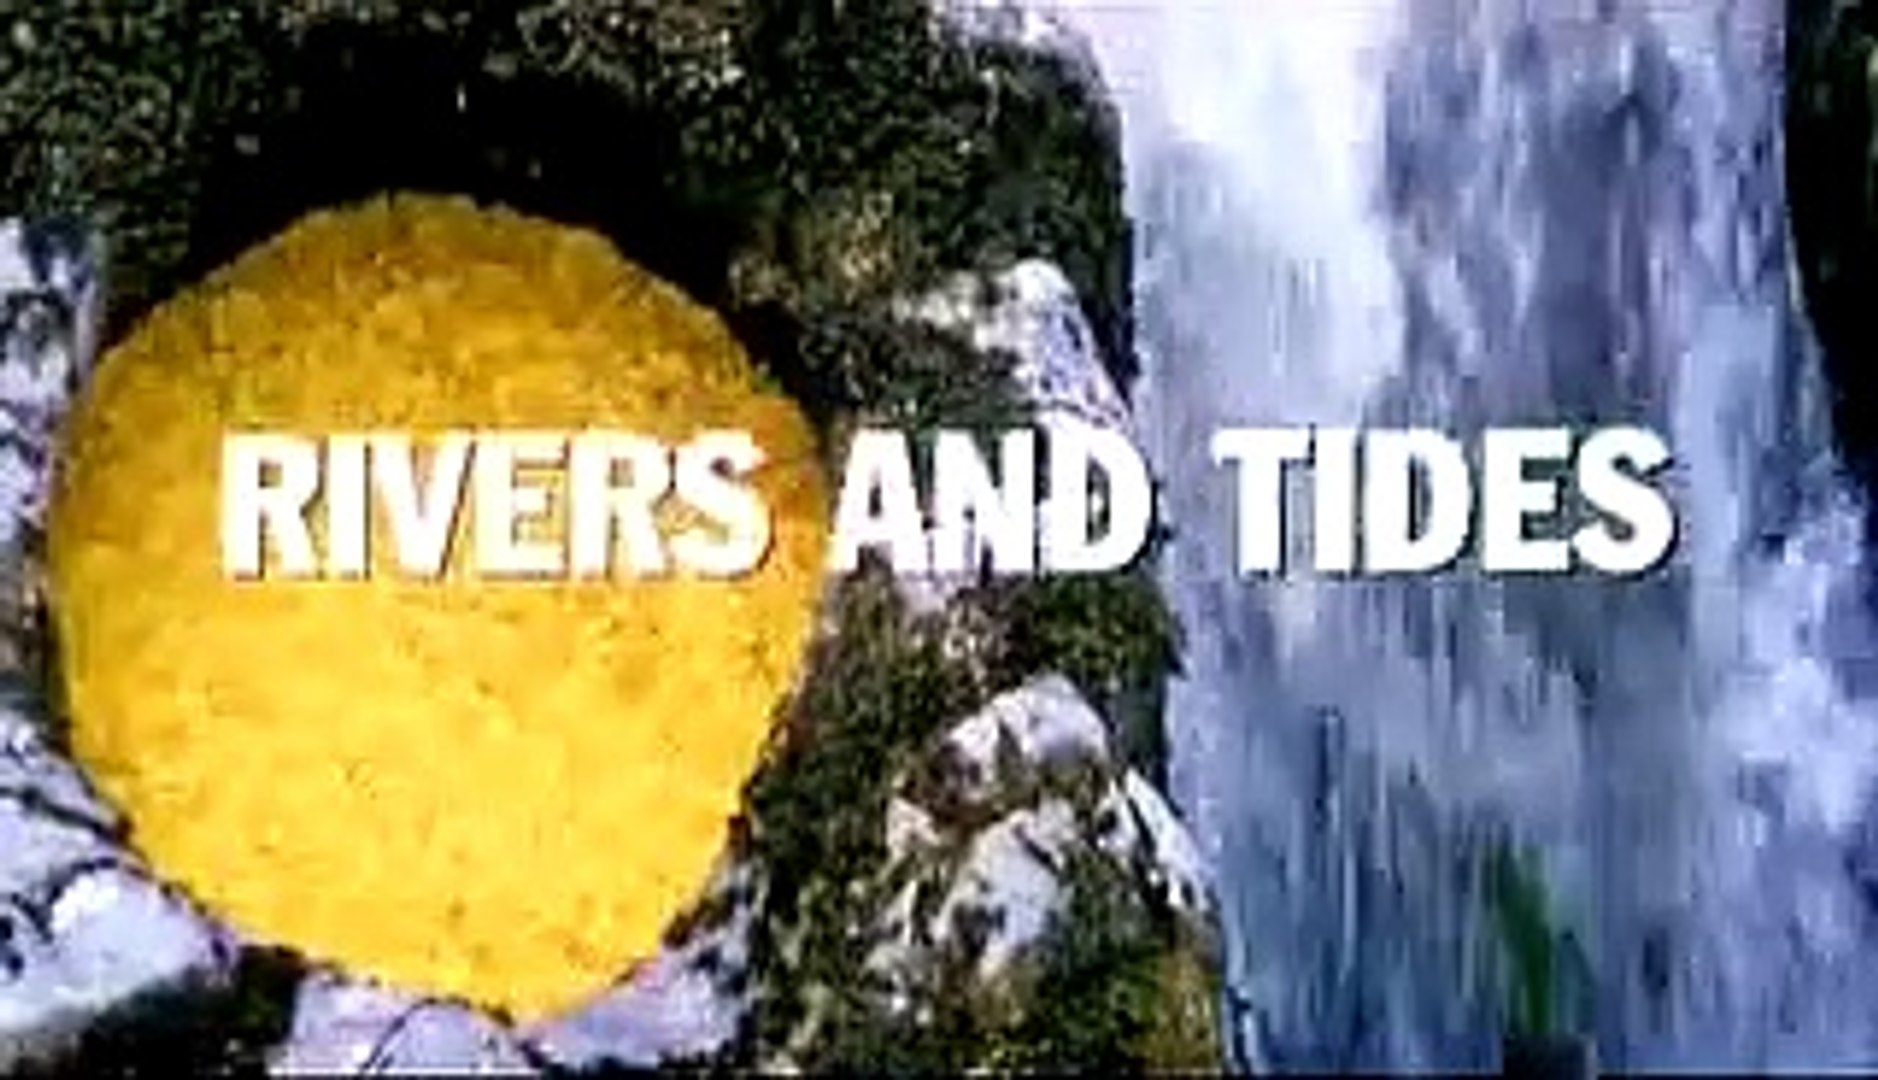 Rivers and Tides: Andy Goldsworthy Working with Time - Trailer